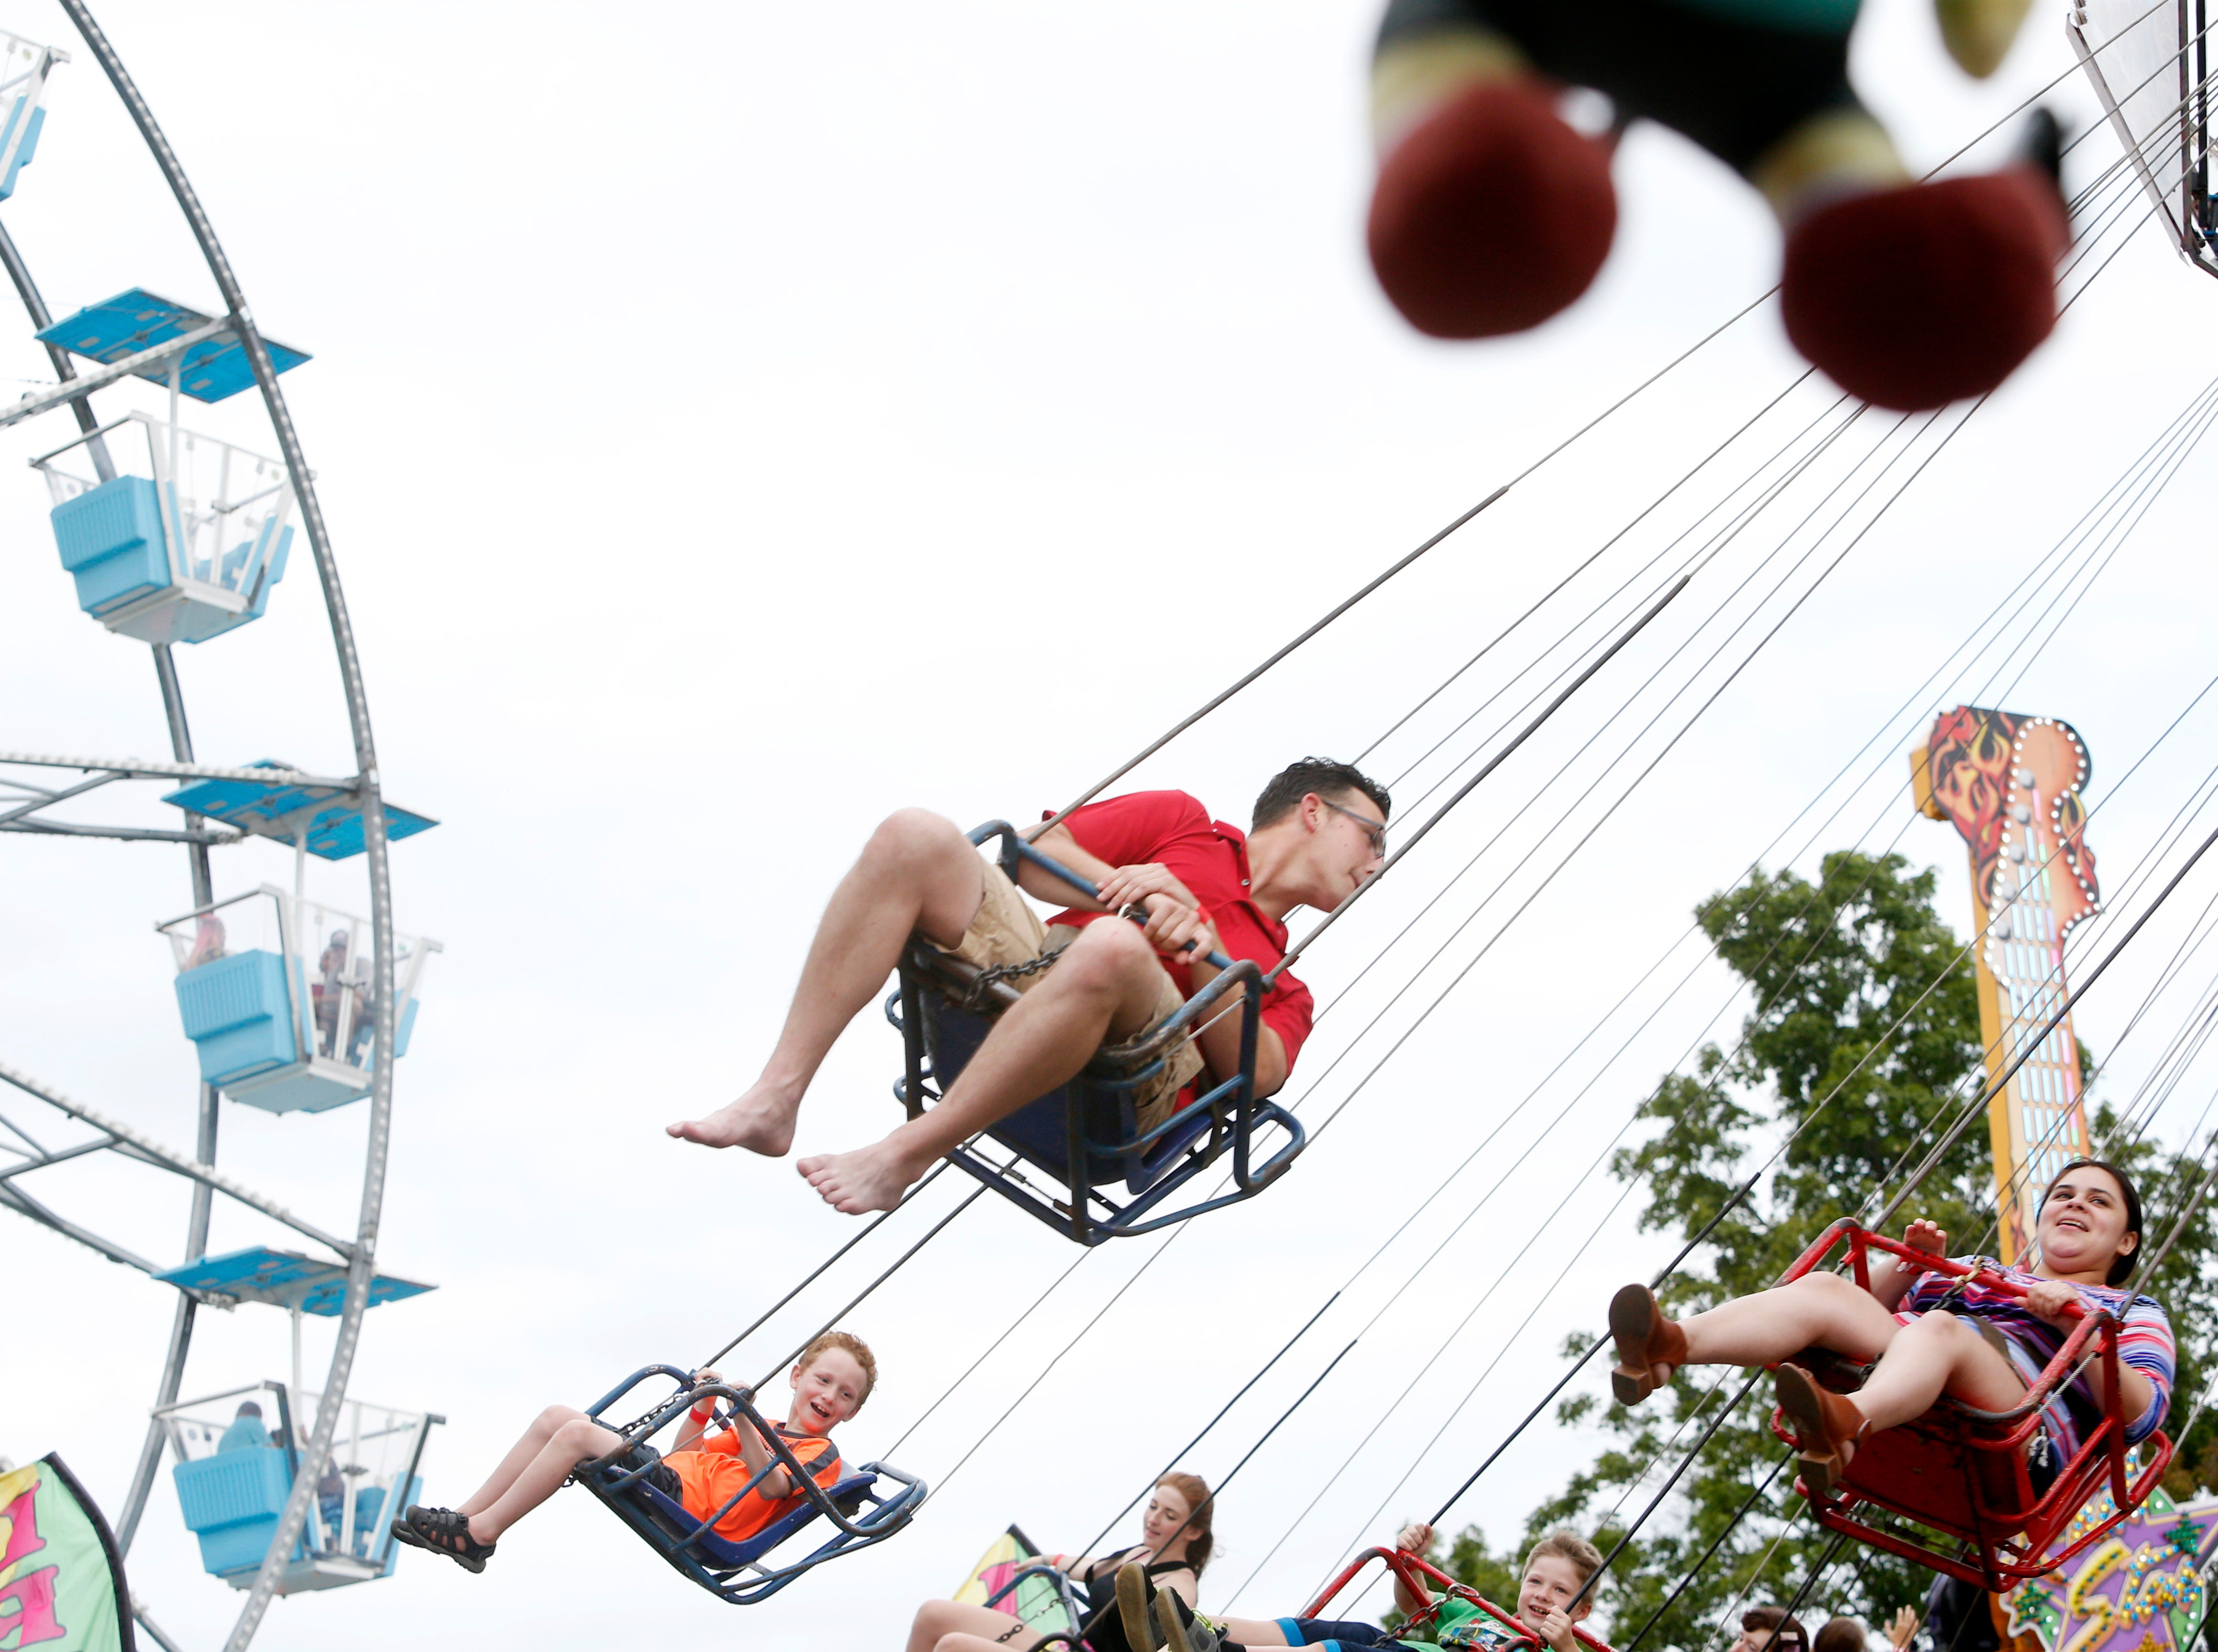 The swings during opening day at the Ulster County Fair in New Paltz on July 31, 2018.